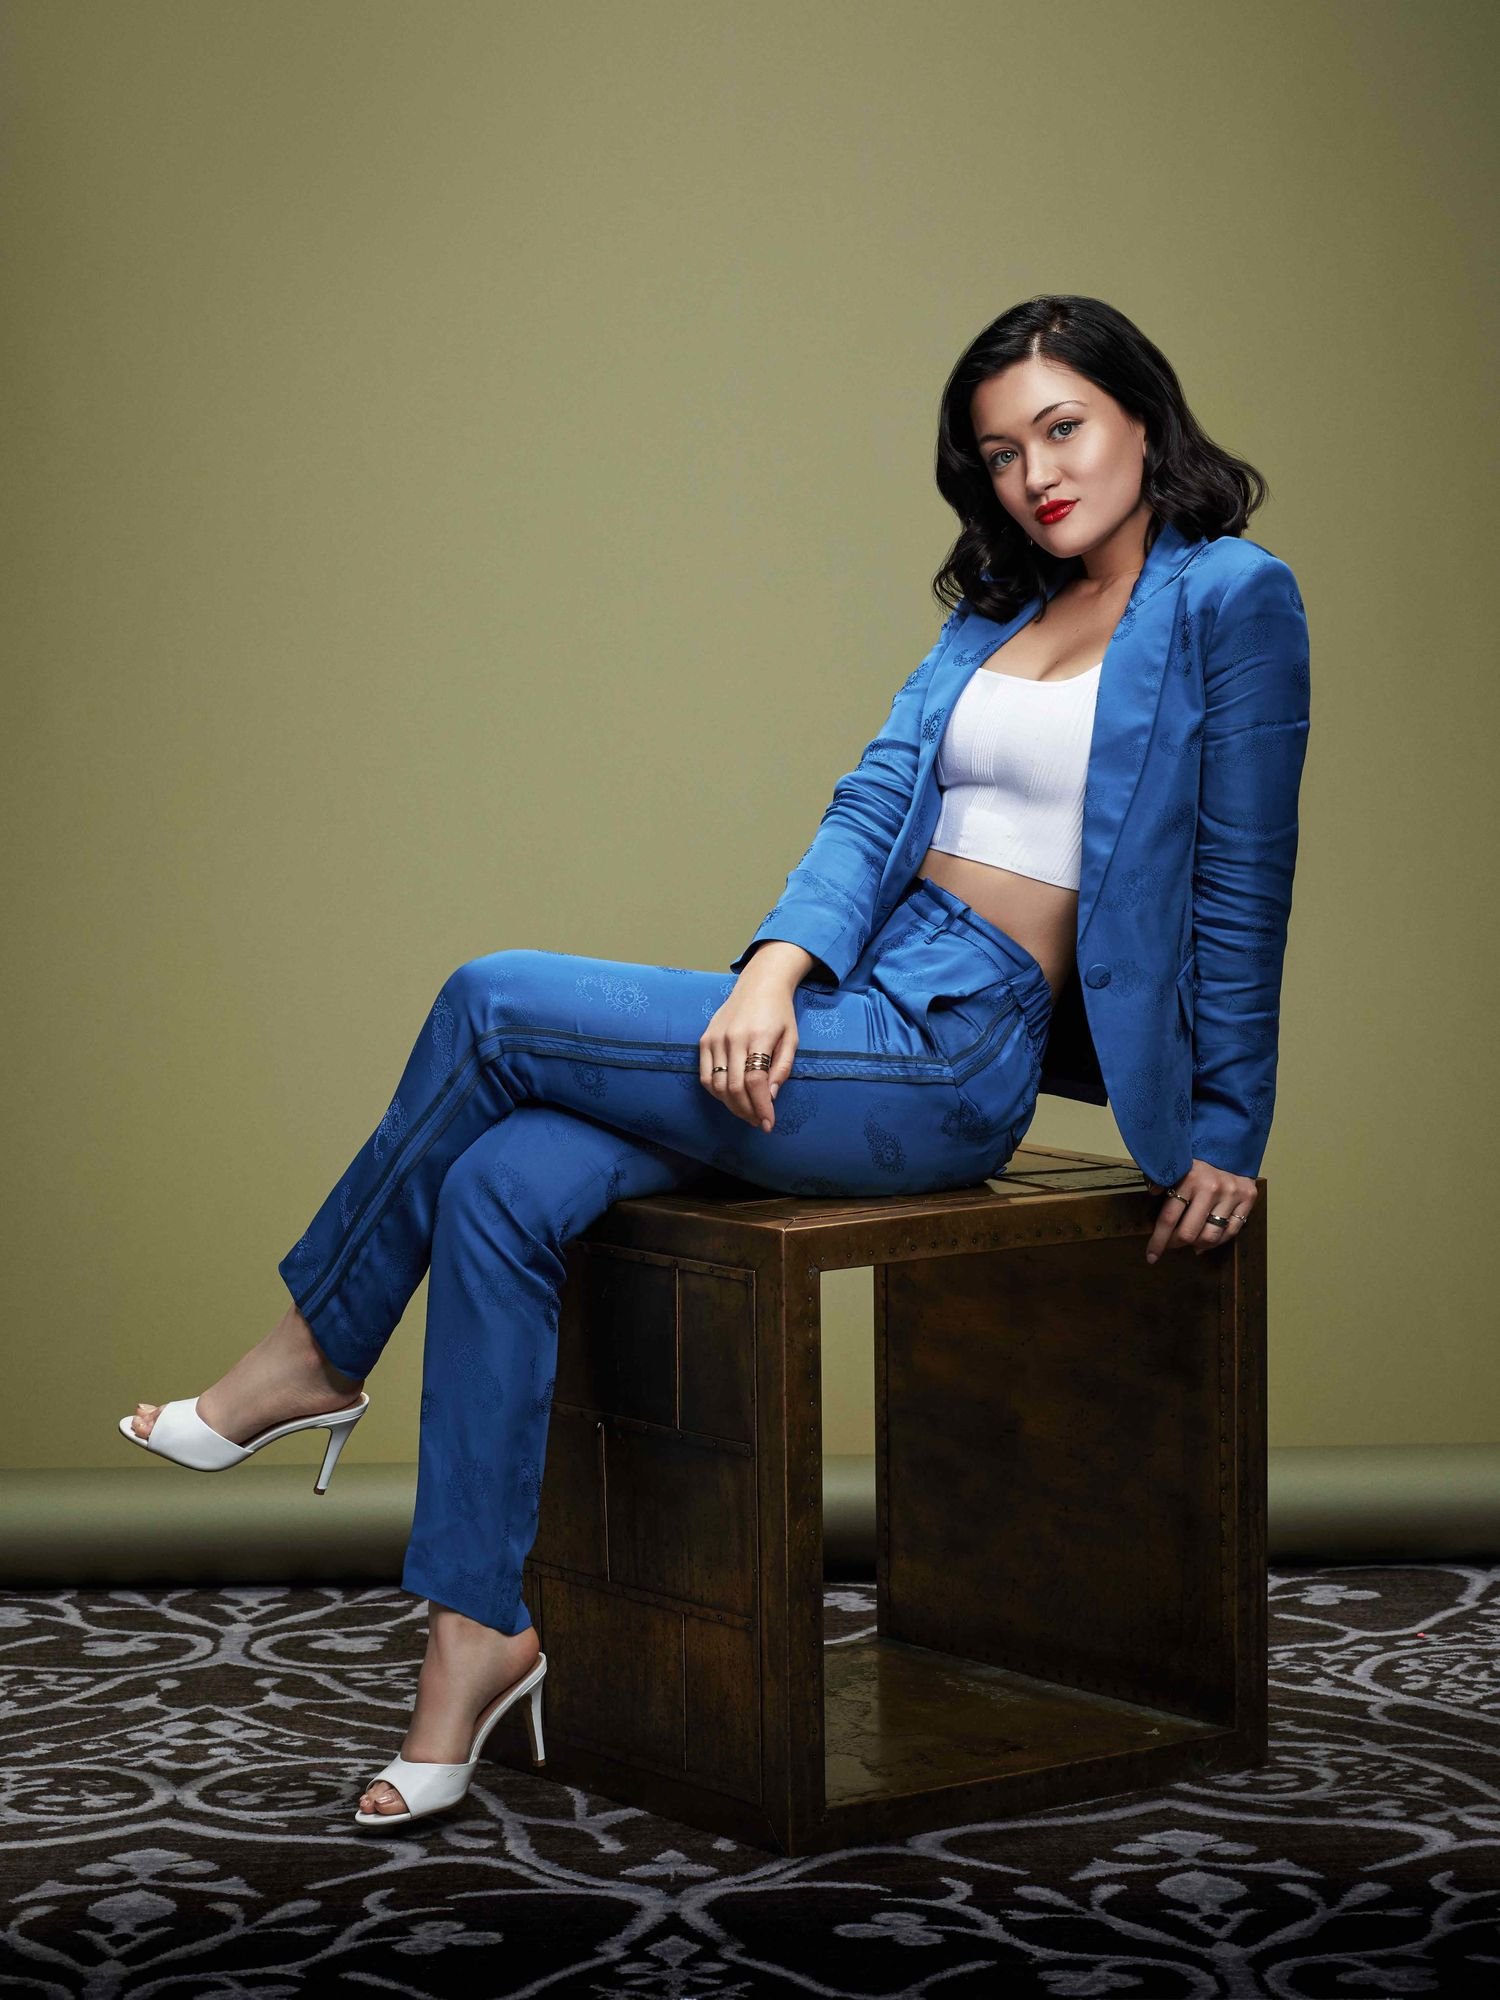 Actress Isa Briones reclines in blue silk jacket and pants.